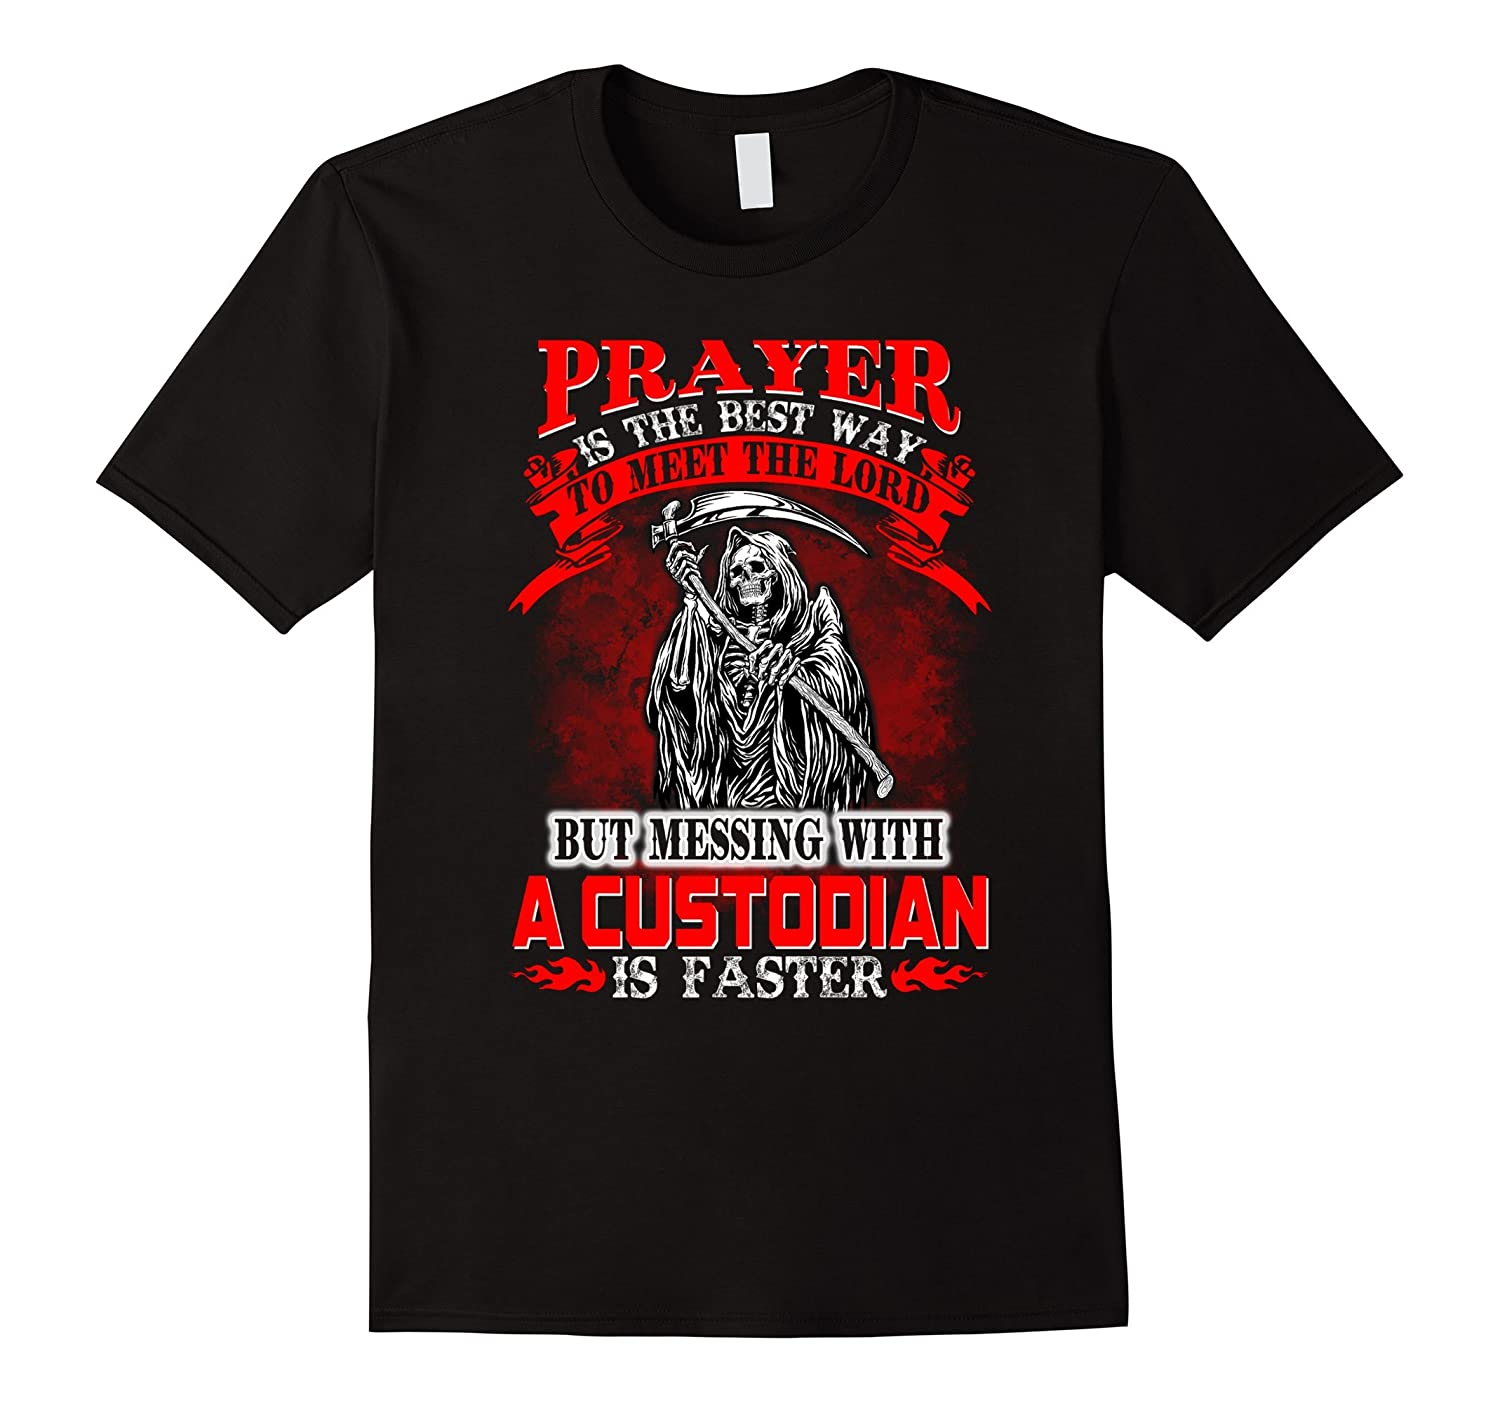 Messing with A CUSTODIAN will meet lord faster t-shirt-PL